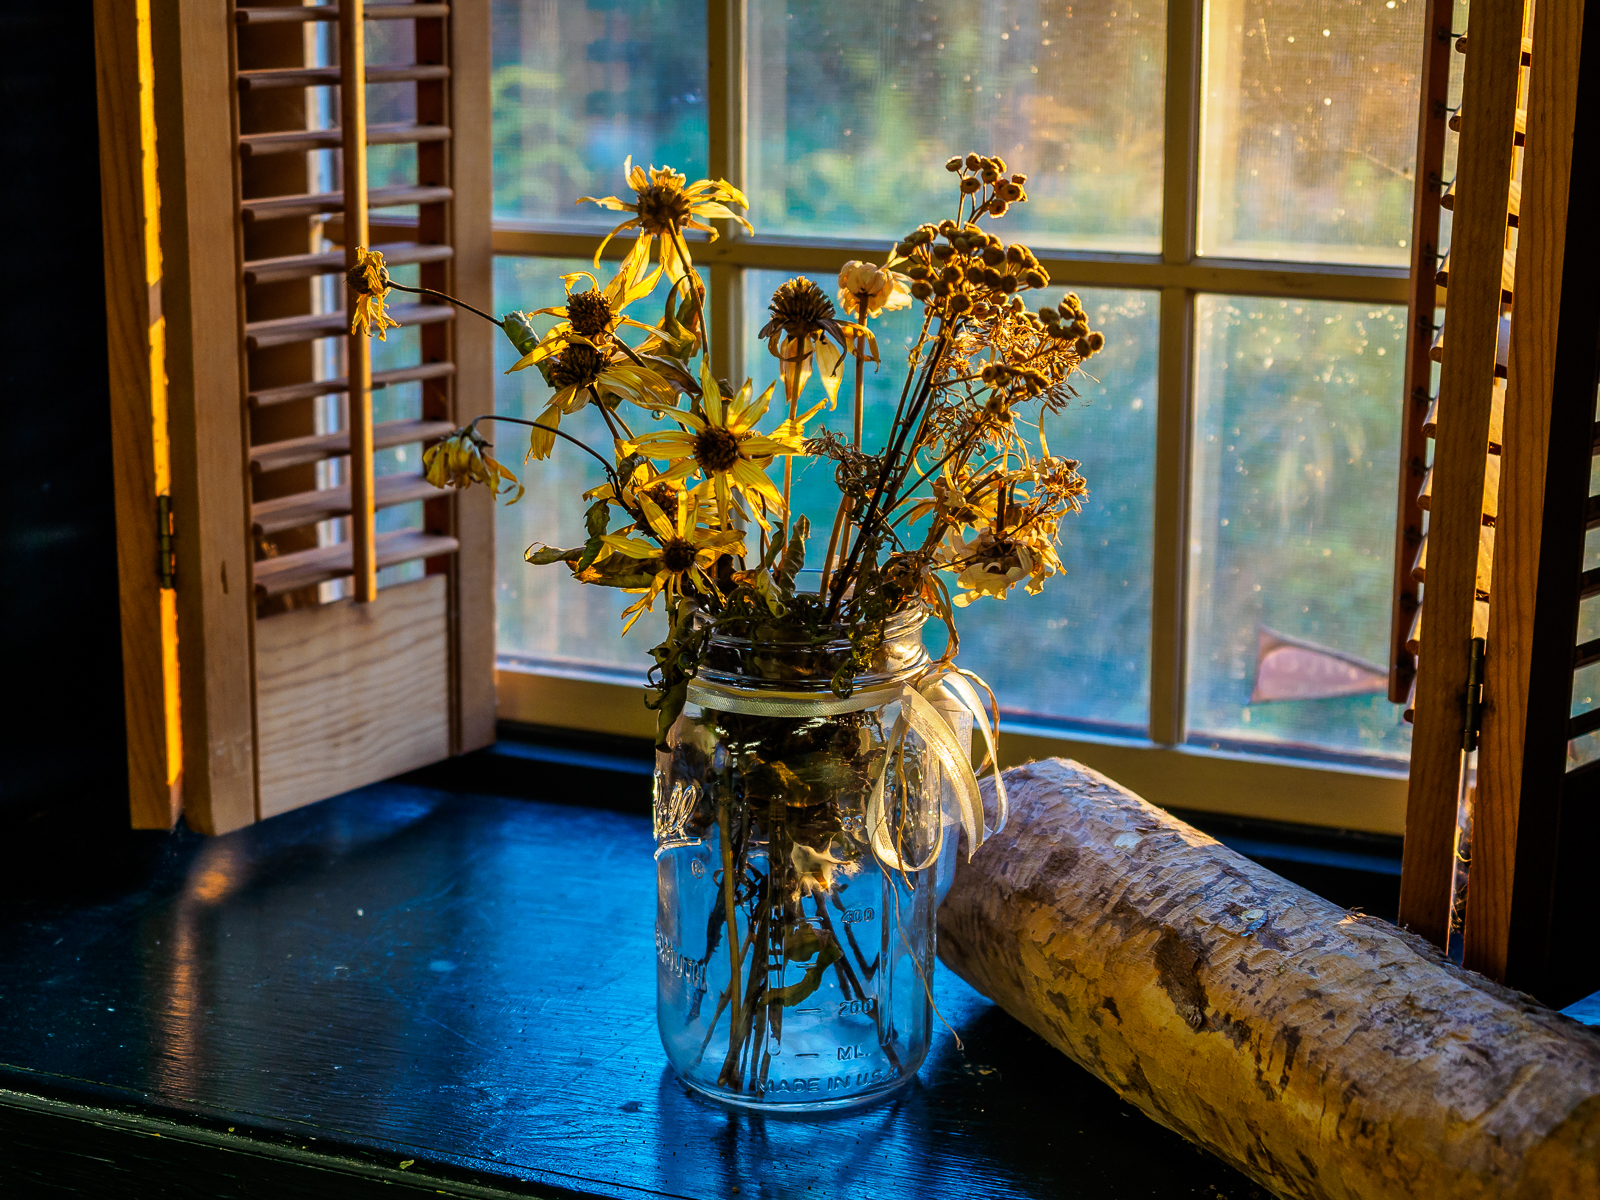 flowers-in-the-window-photograph-9120002